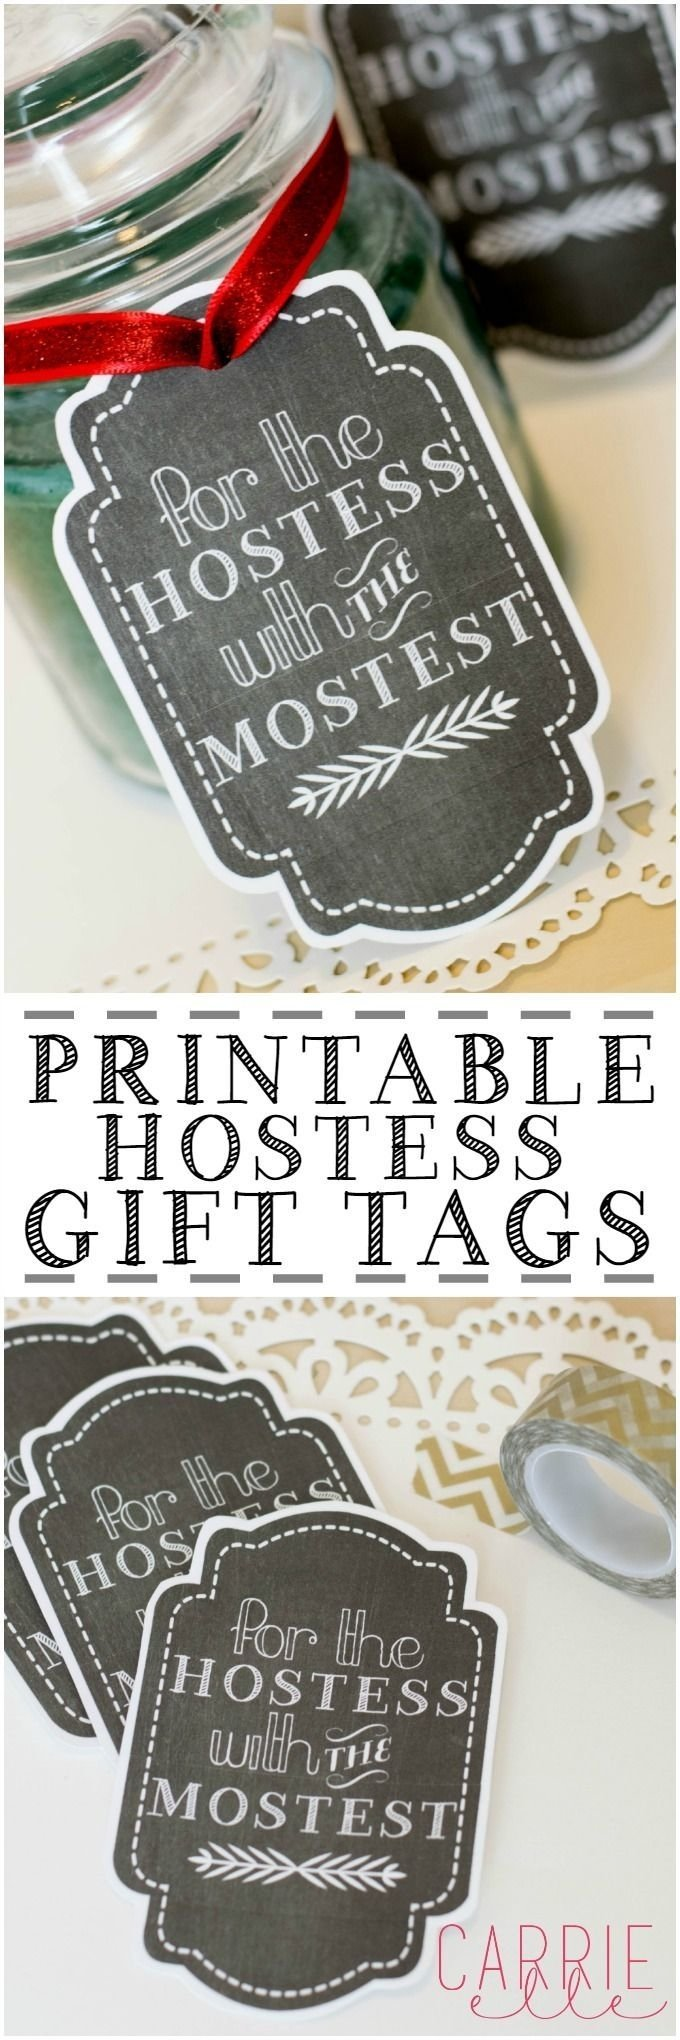 free printable gift tags: hostess gift tag | diy ideas | pinterest